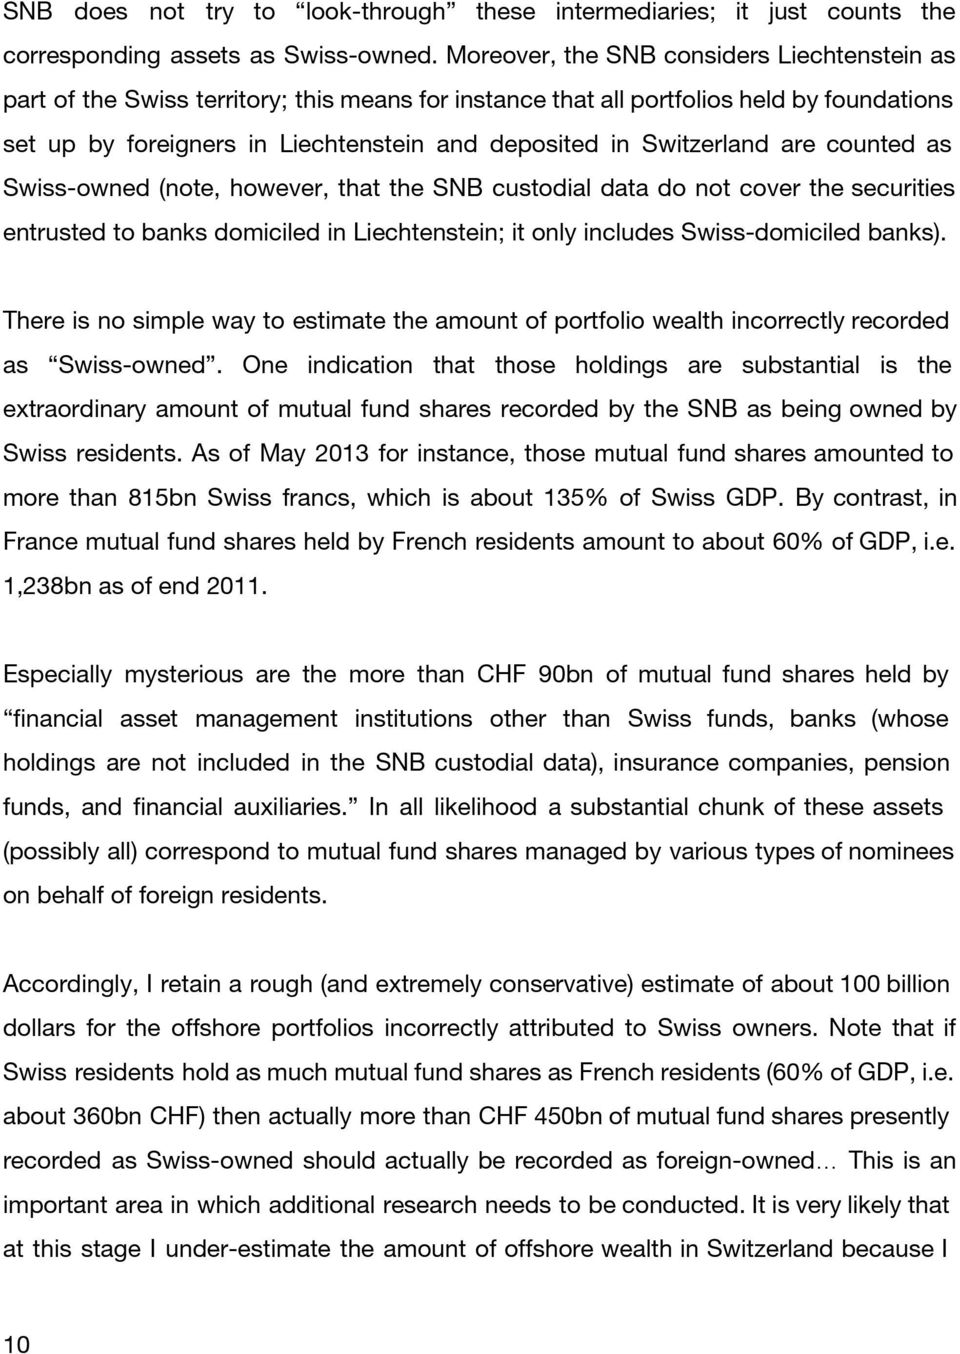 Switzerland are counted as Swiss-owned (note, however, that the SNB custodial data do not cover the securities entrusted to banks domiciled in Liechtenstein; it only includes Swiss-domiciled banks).